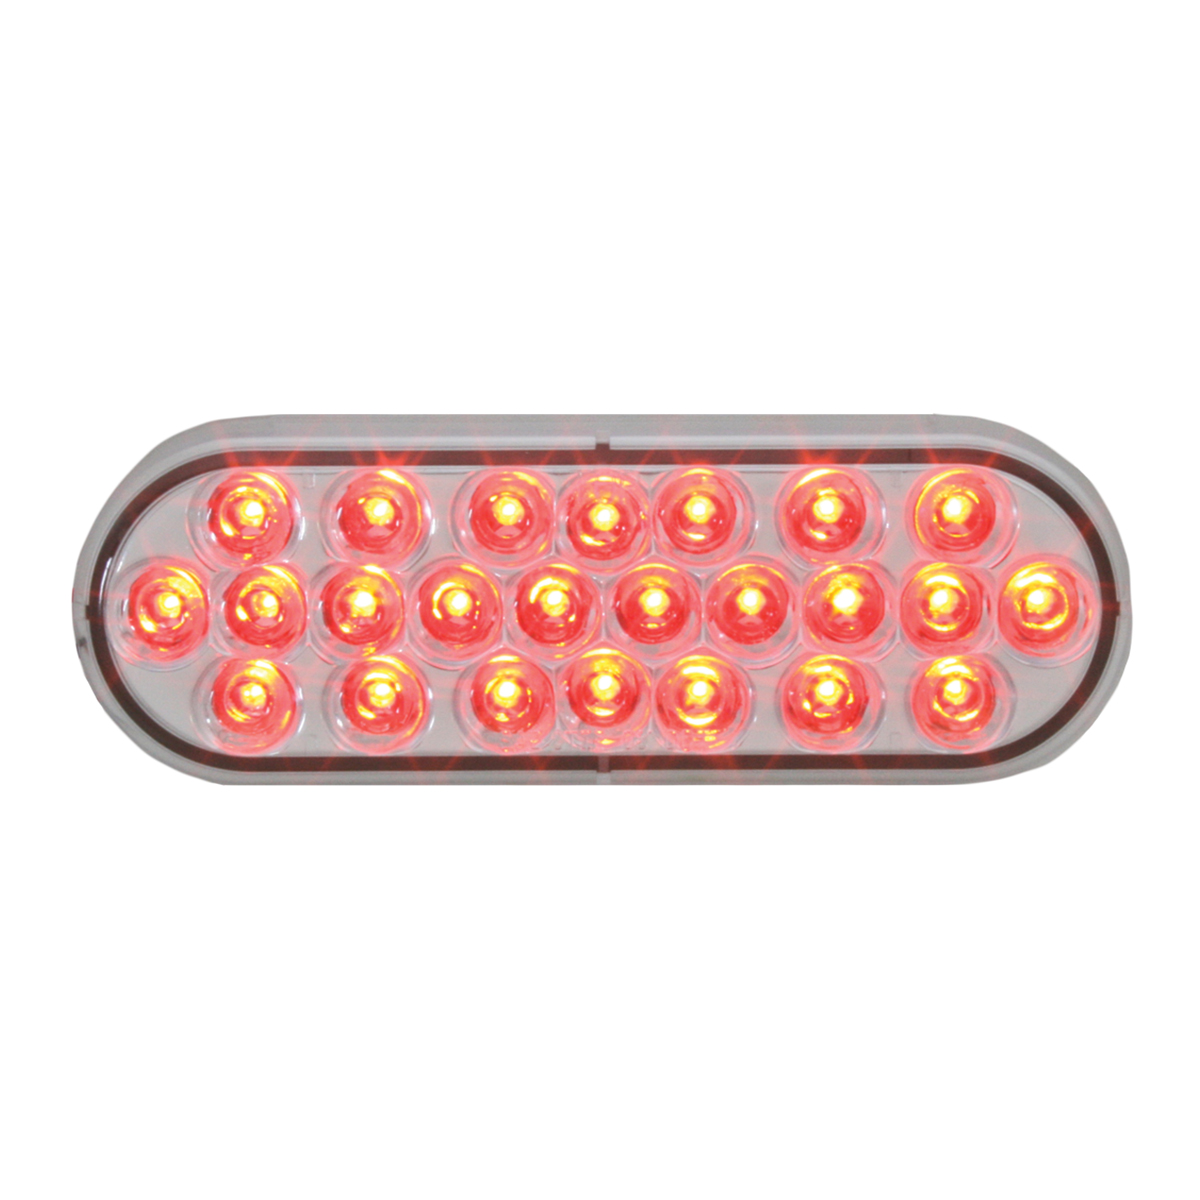 #78234 Oval Sealed Pearl LED Flat Red/Clear Light